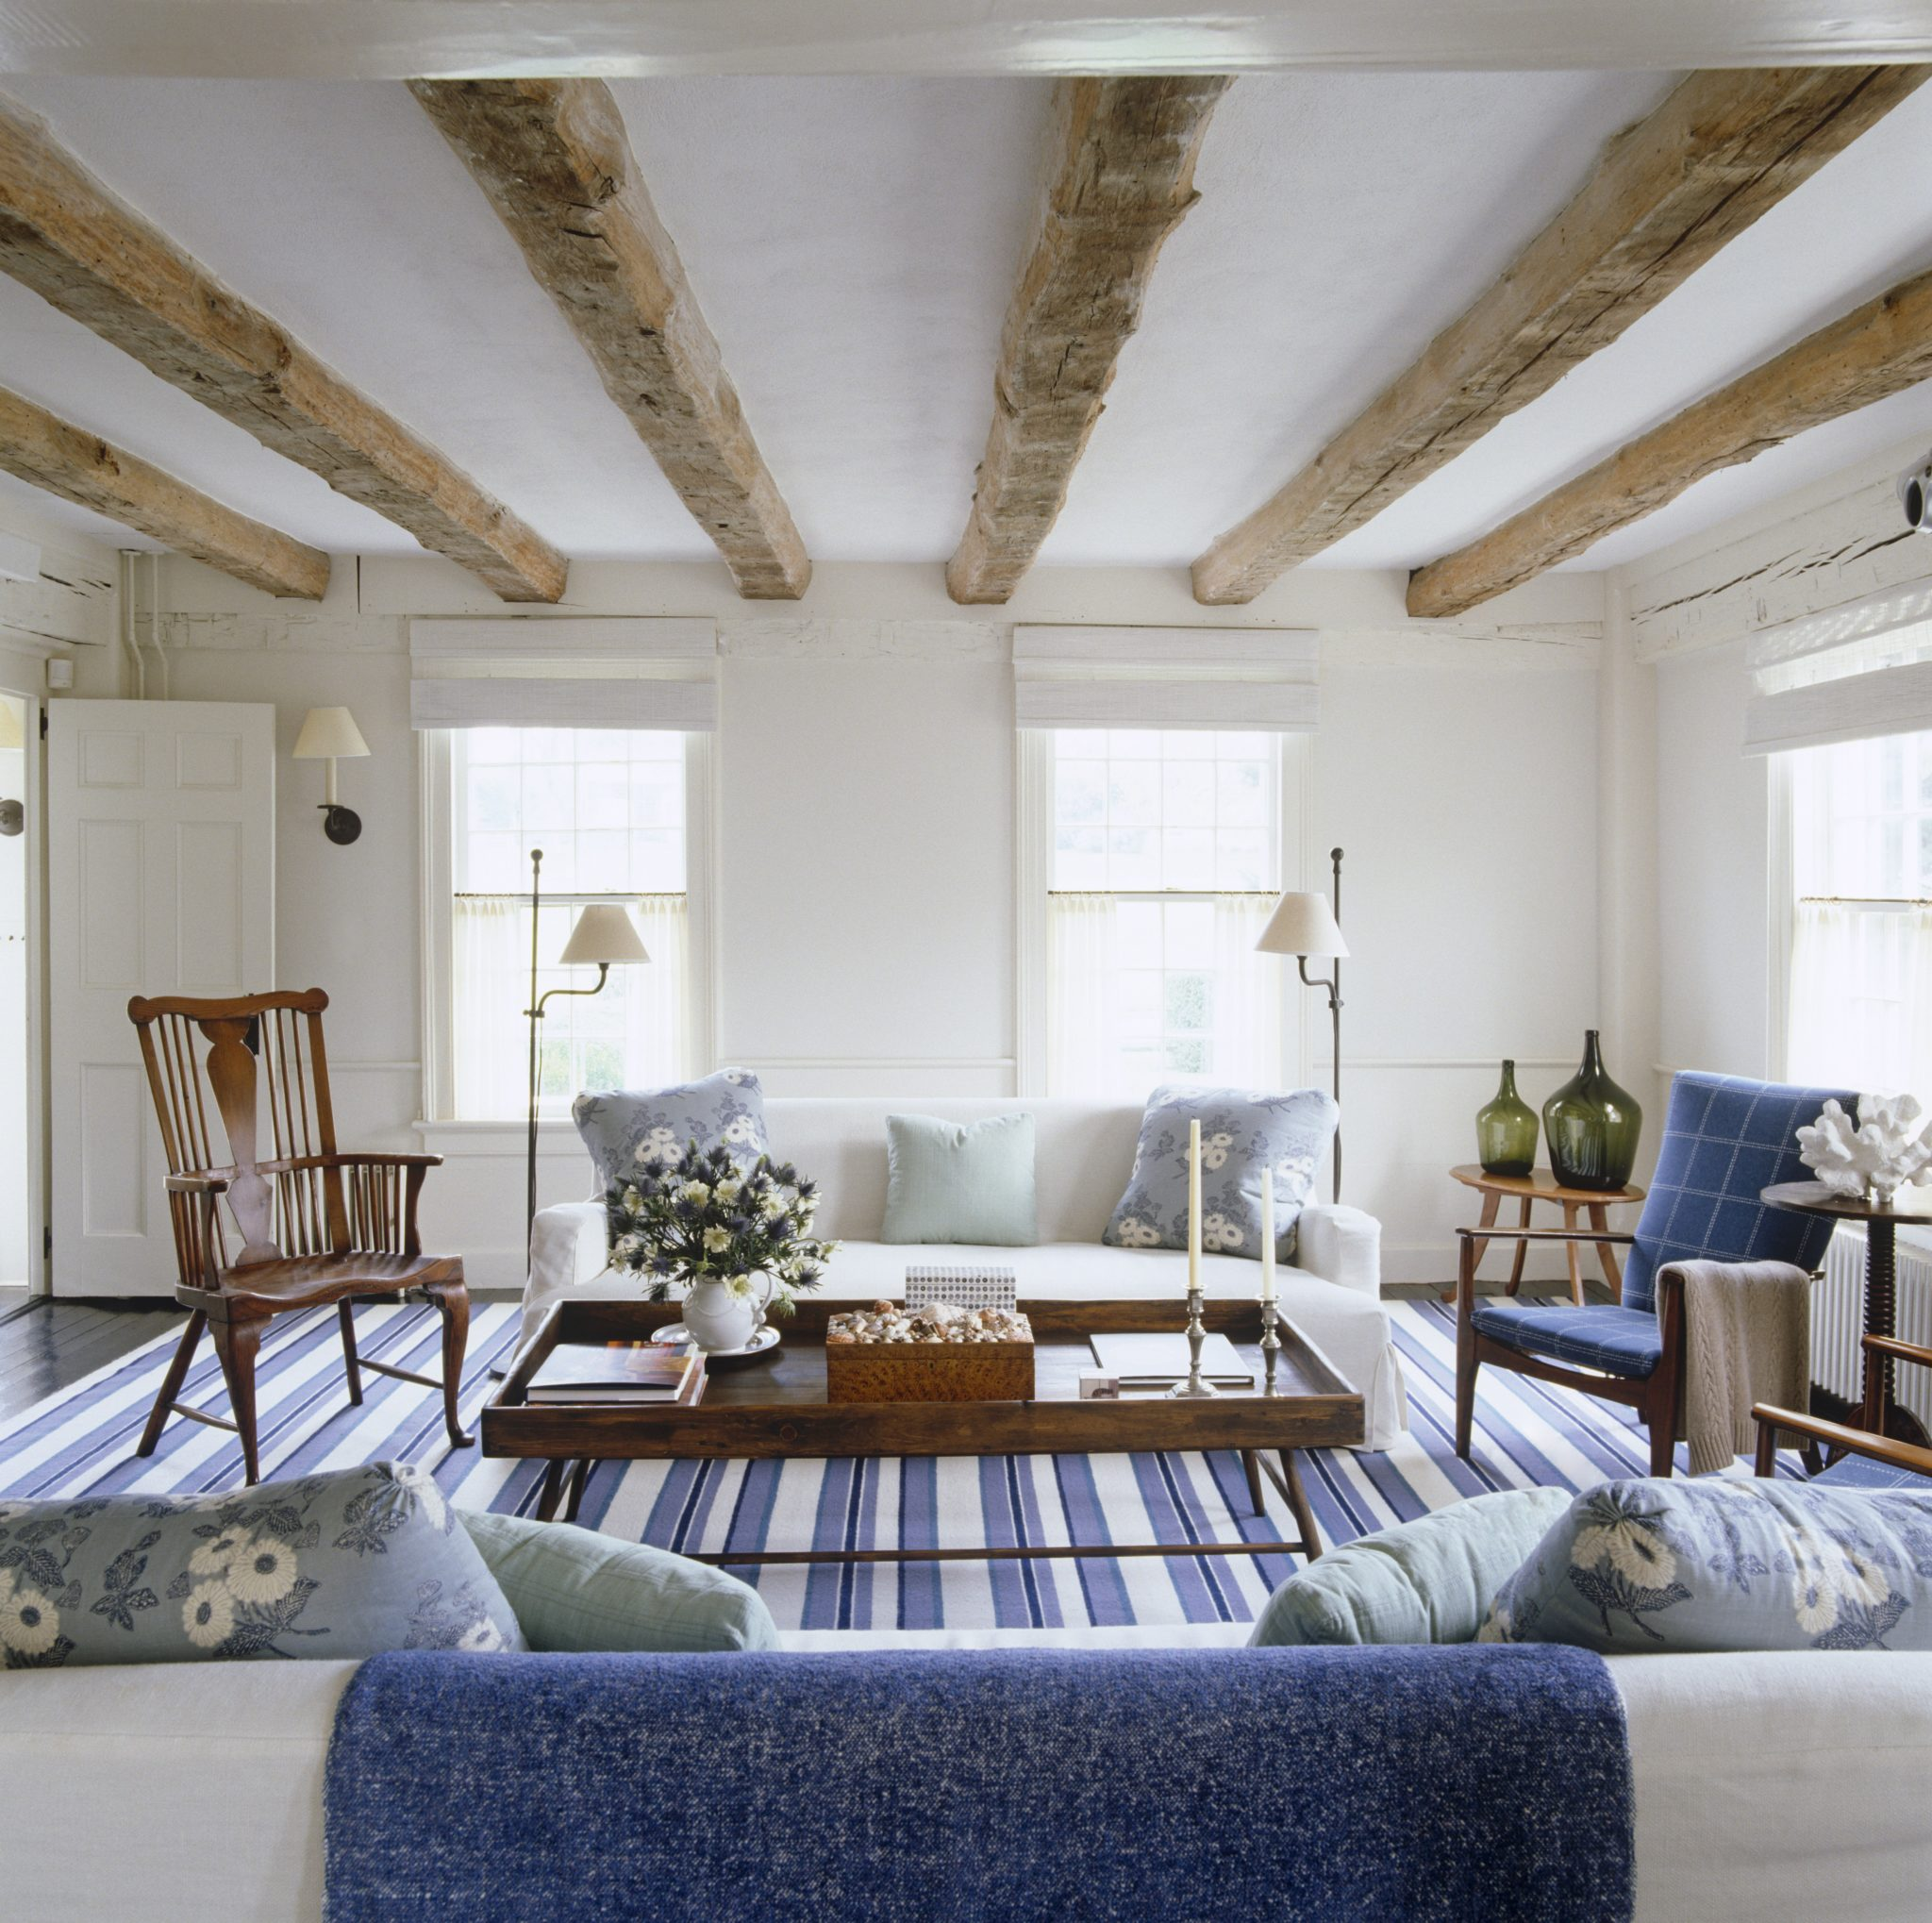 In a 230-year-old shingled house in East Hampton, the designer fitted out the living room with a new dhurrie carpet that lends it a fresh and beachy air. The blue stripes echo the antique beamed ceiling and add to the range of various blues throughout the house.